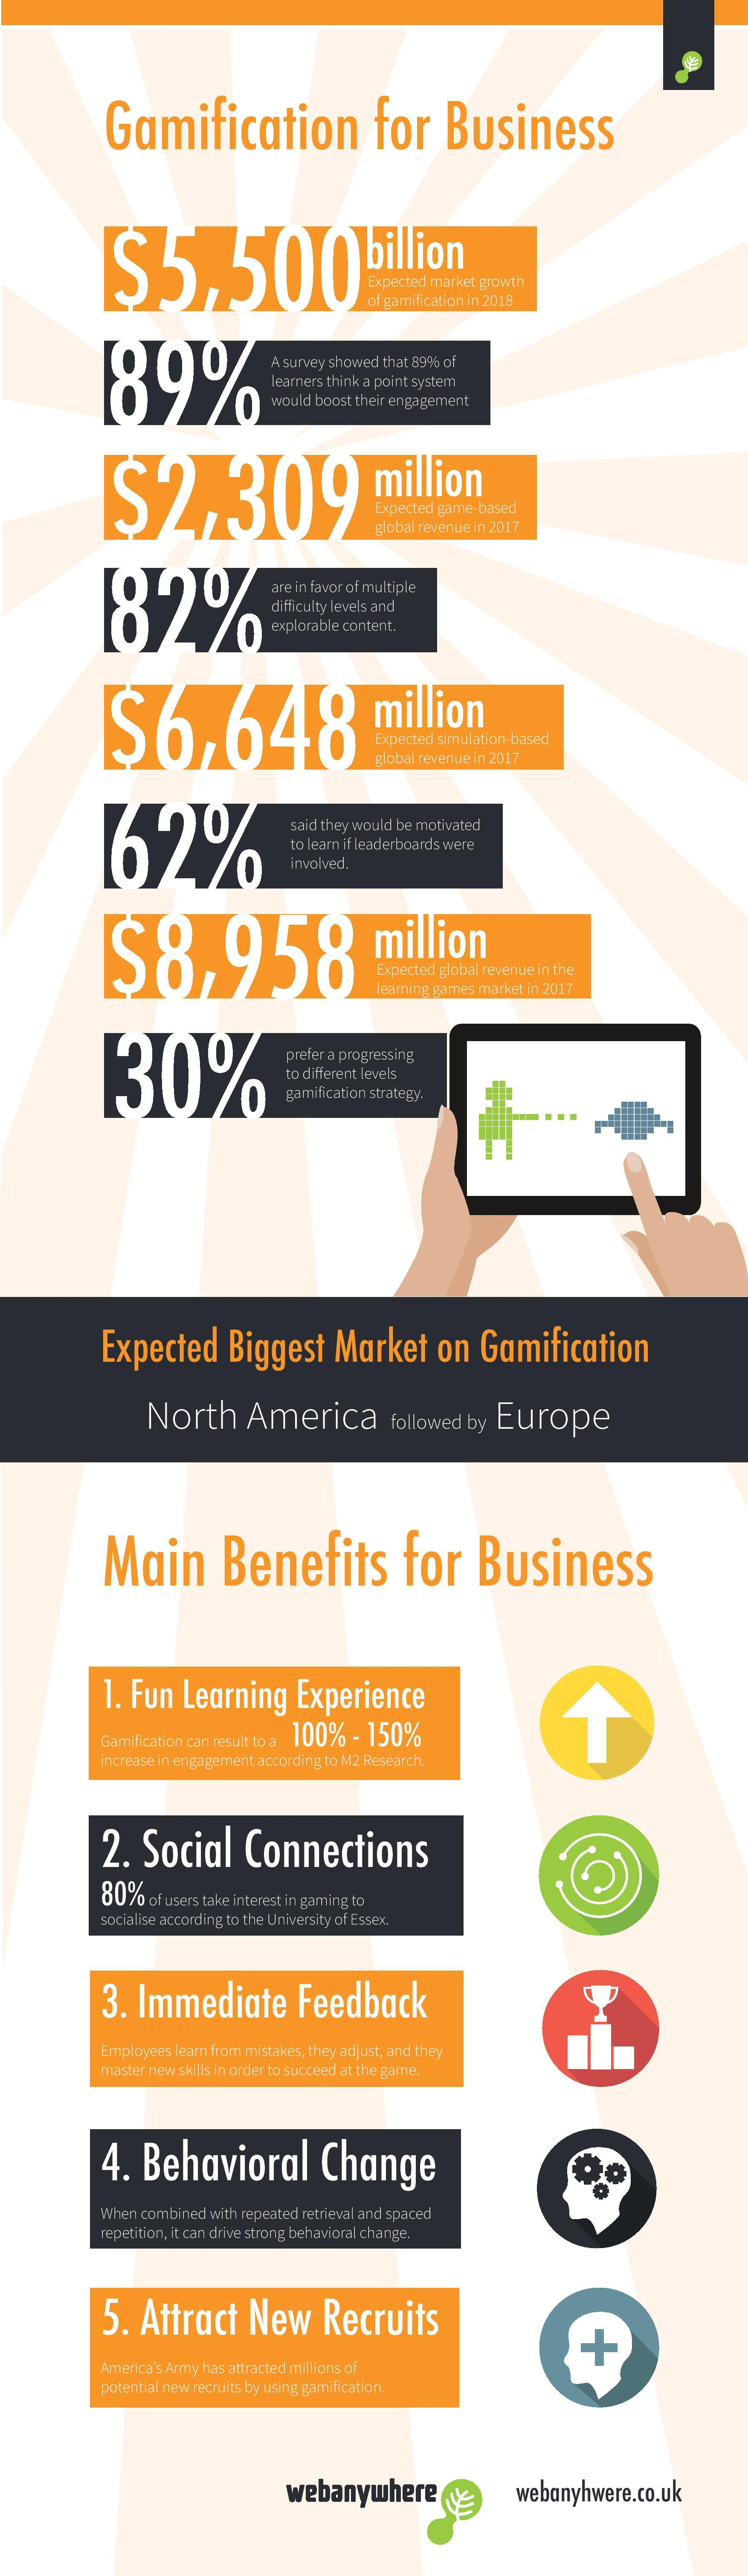 Gamification for Business Infographic